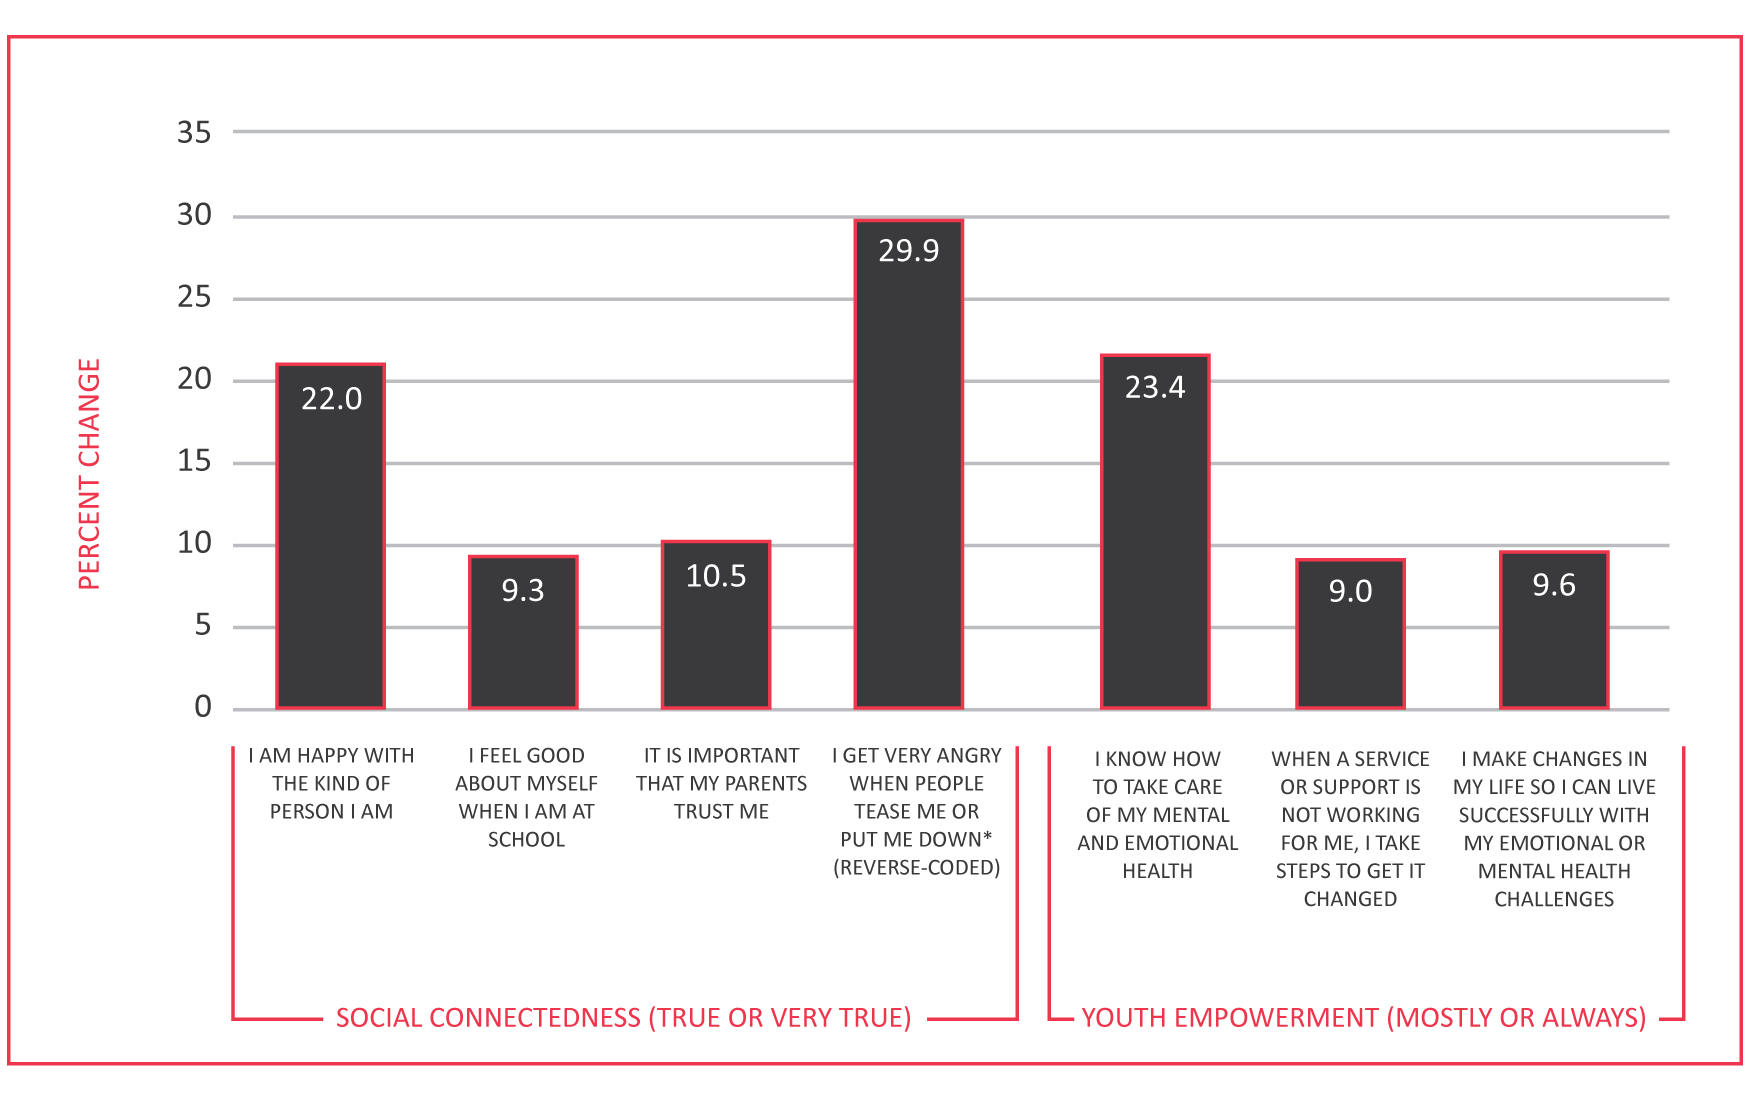 Figure 2. Social Connectedness and Youth Empowerment: Percent Change from Baseline to 6 Months